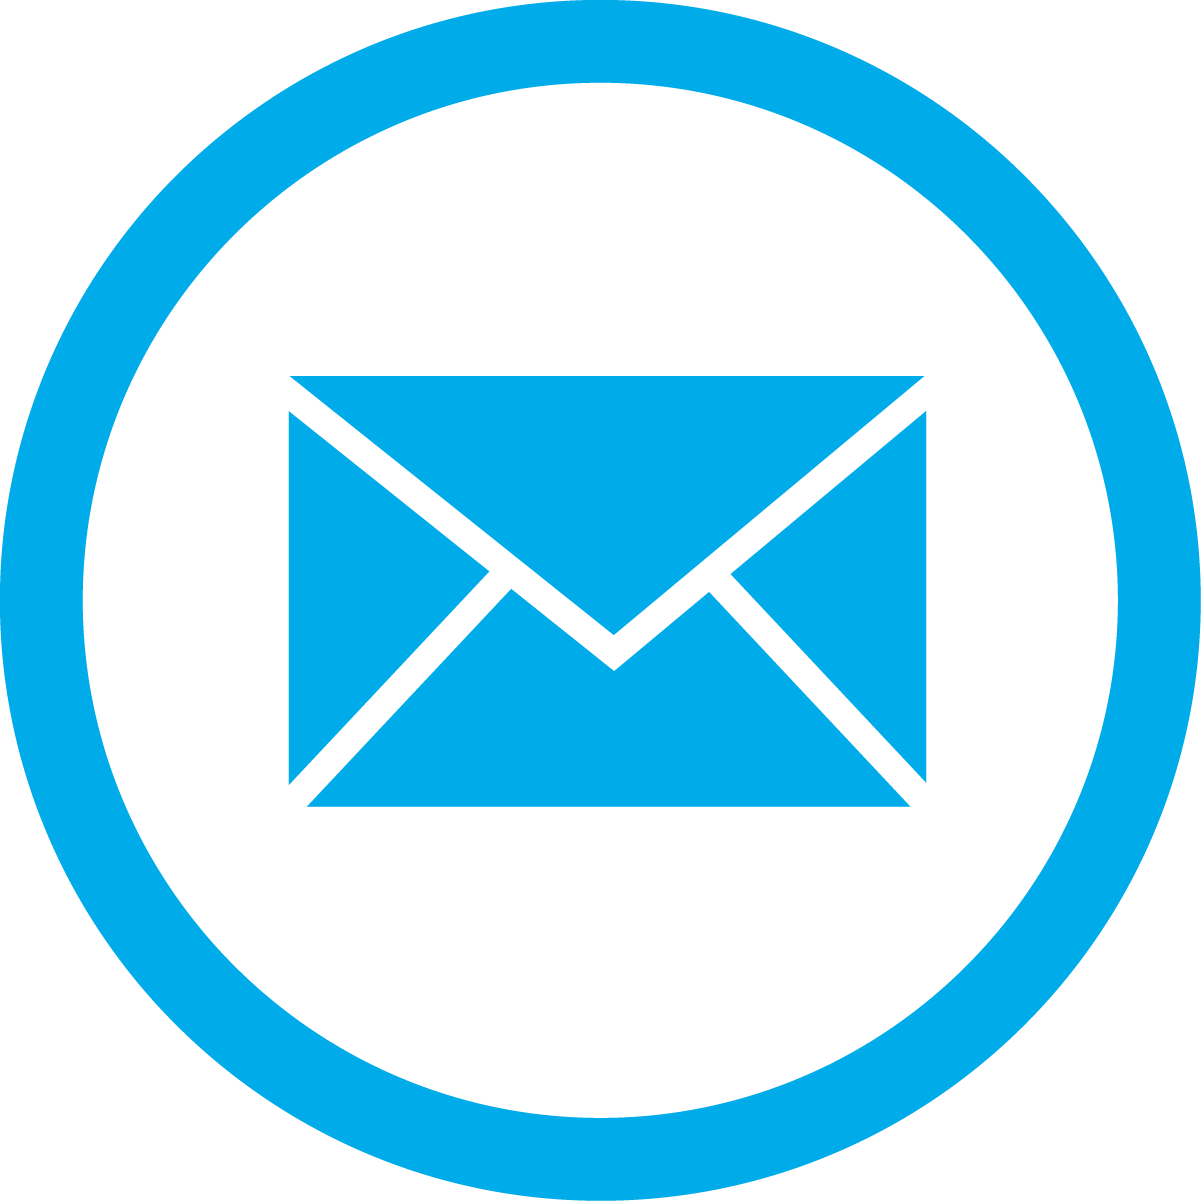 blue email box circle png transparent icon from freepnglogos.com